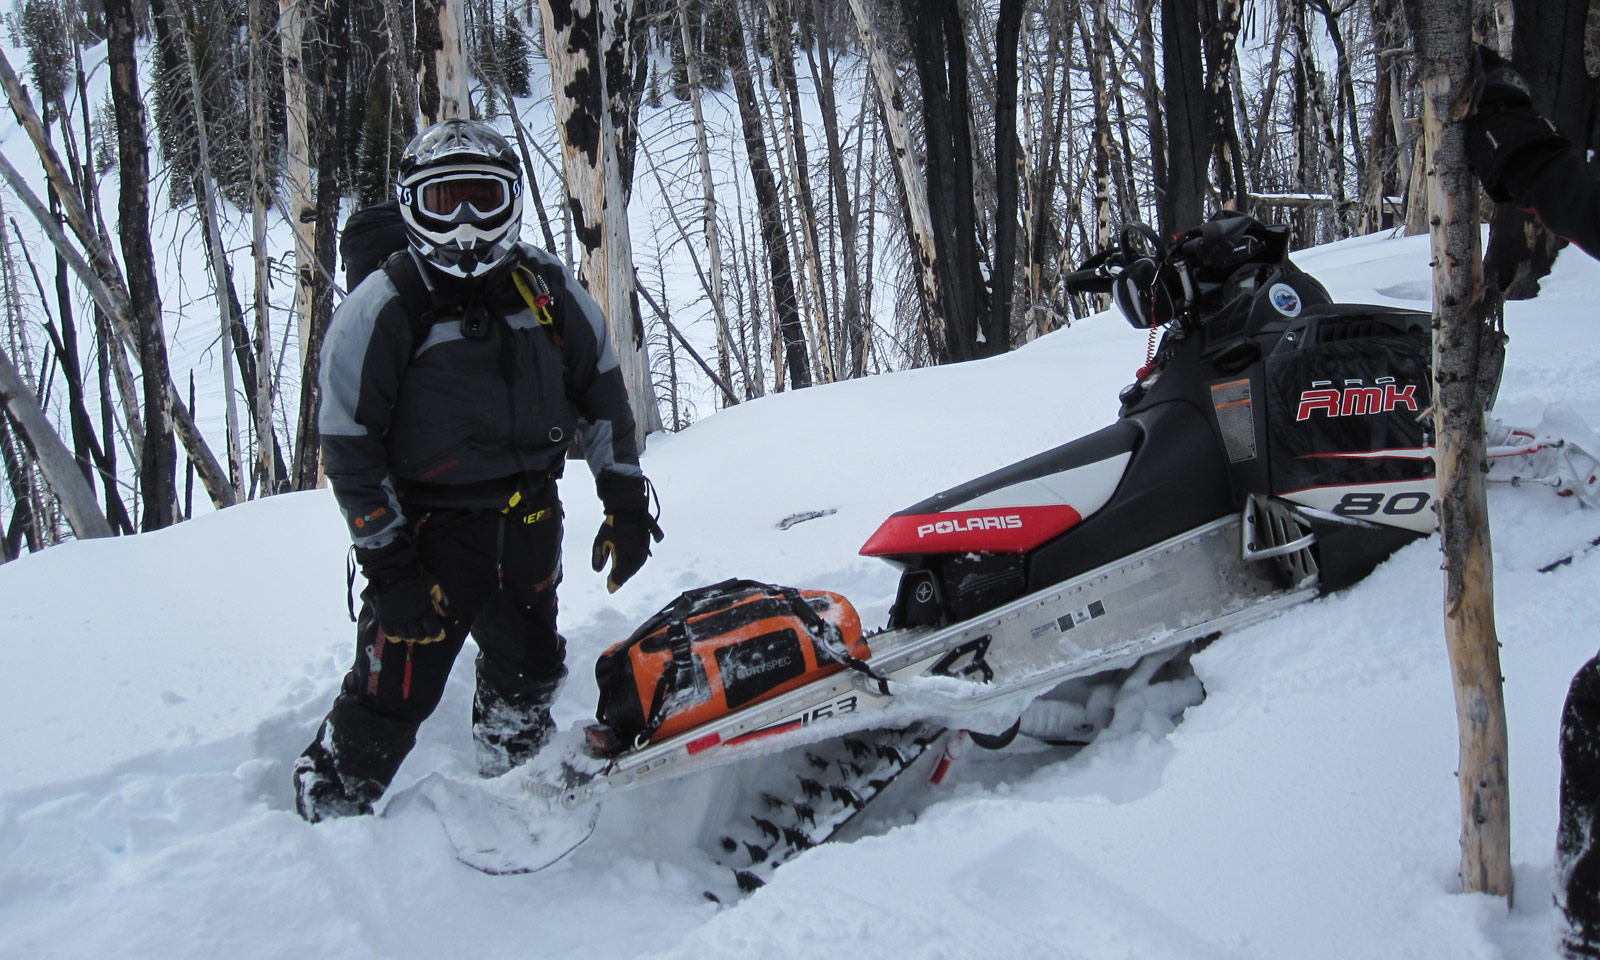 Snowmobile in snowbank